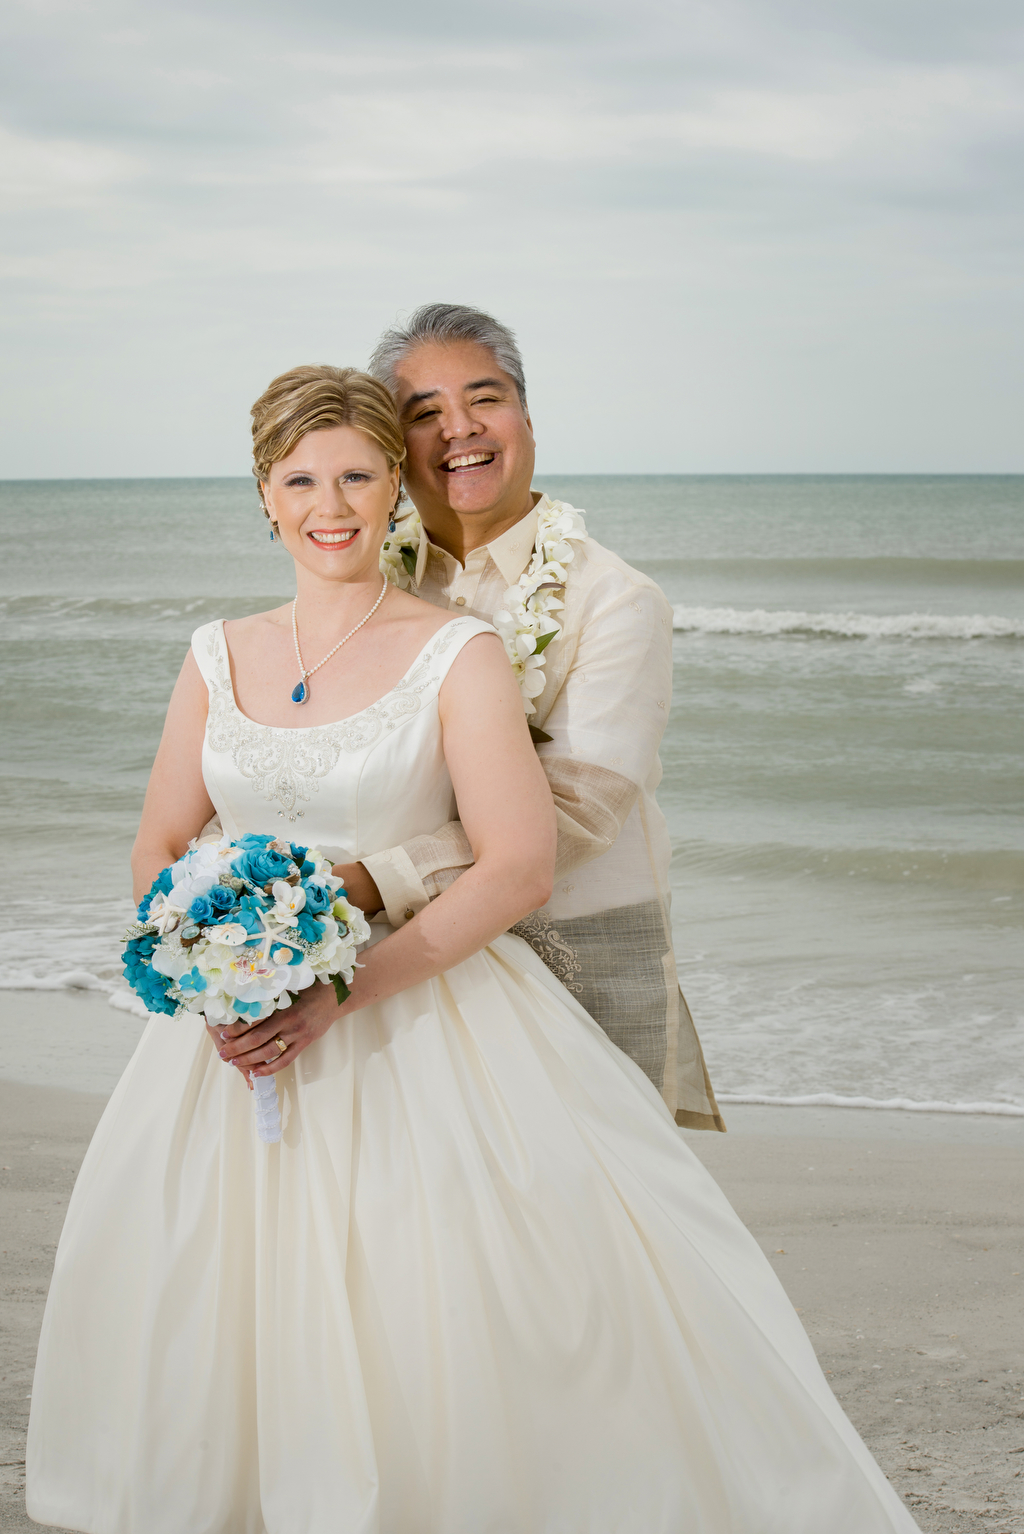 Anitra Pavka and Joey deVilla's wedding photo — Anitra posing with the beach behind them at St. Pete Beach.